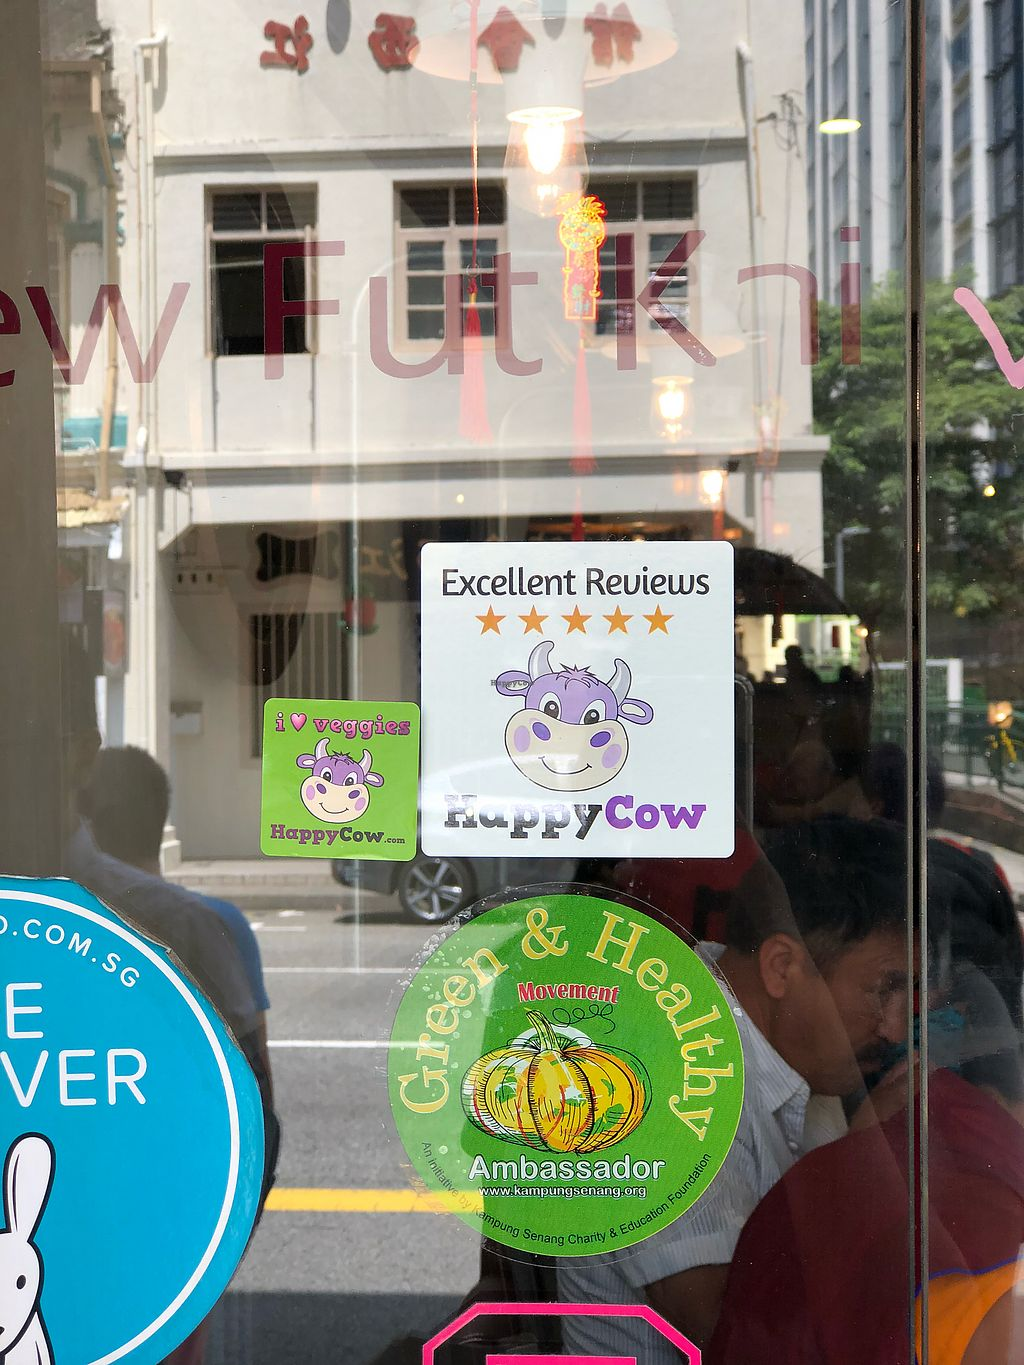 "Photo of New Fut Kai Vegetarian Restaurant  by <a href=""/members/profile/CherylQuincy"">CherylQuincy</a> <br/>Happycow decal <br/> February 19, 2018  - <a href='/contact/abuse/image/12040/361197'>Report</a>"